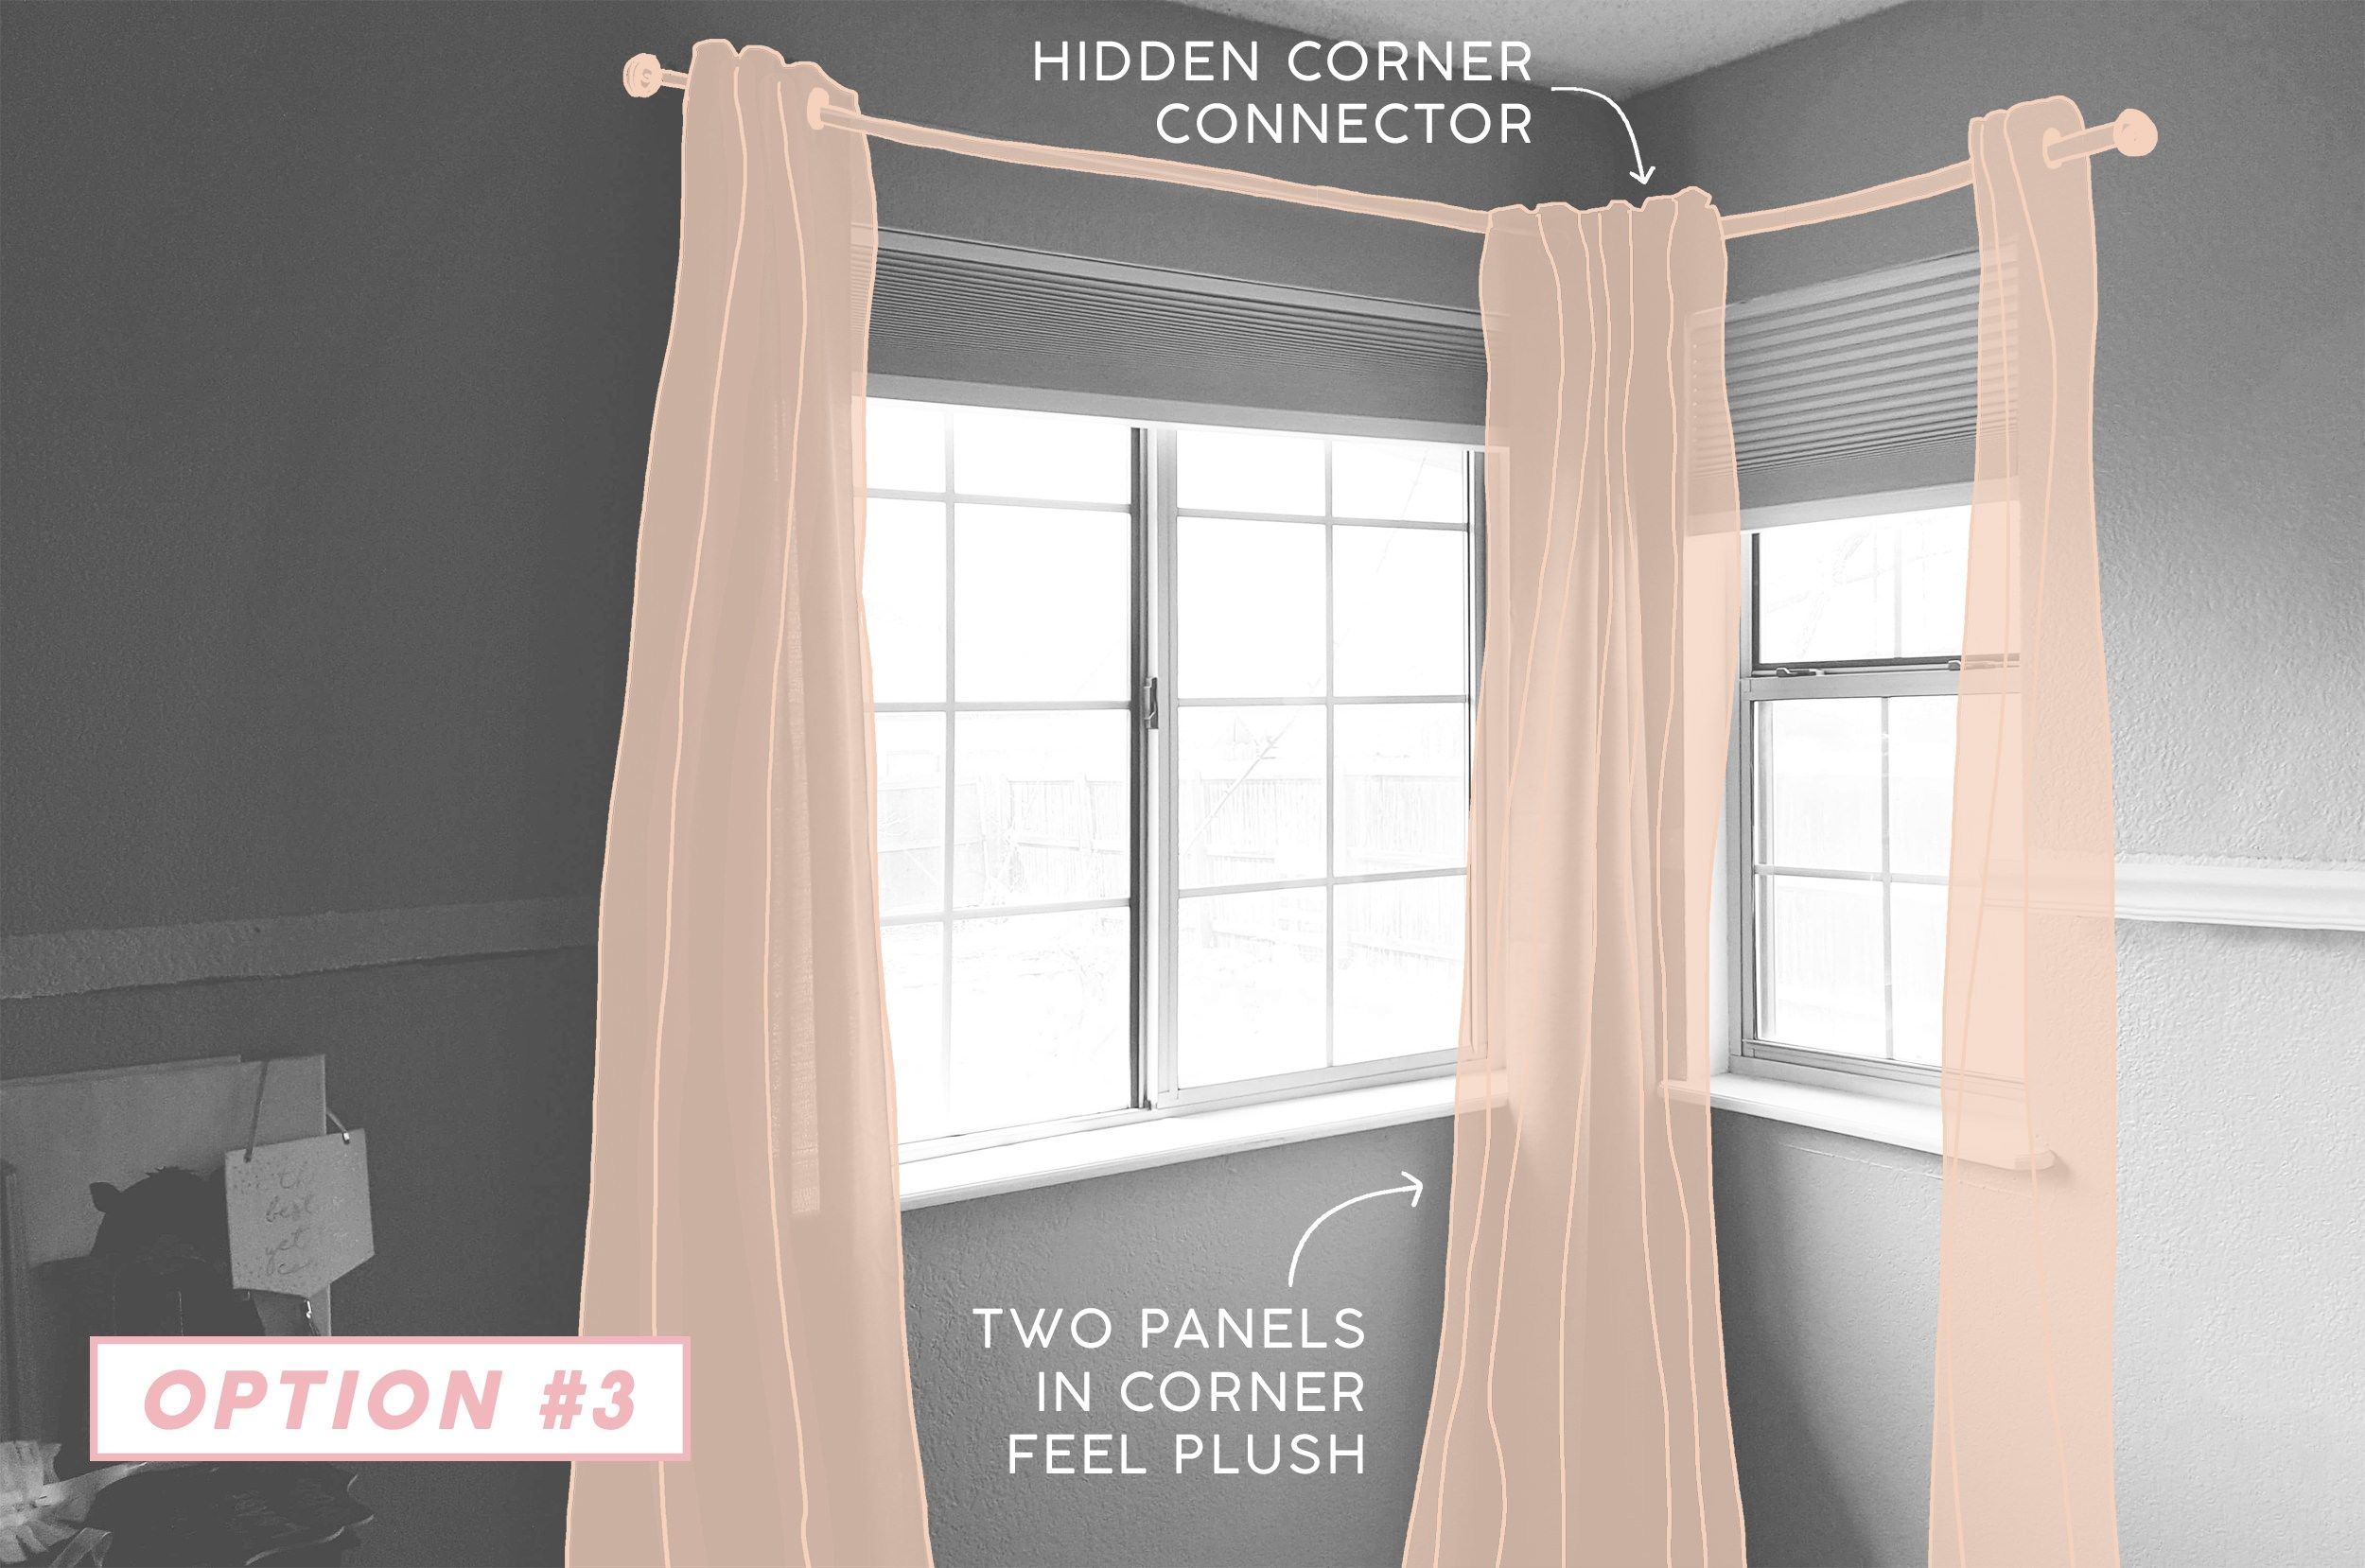 9 Solutions For How To Dress Awkward Windows Window Treatments Living Room Window Curtains Bedroom Corner Window Treatments